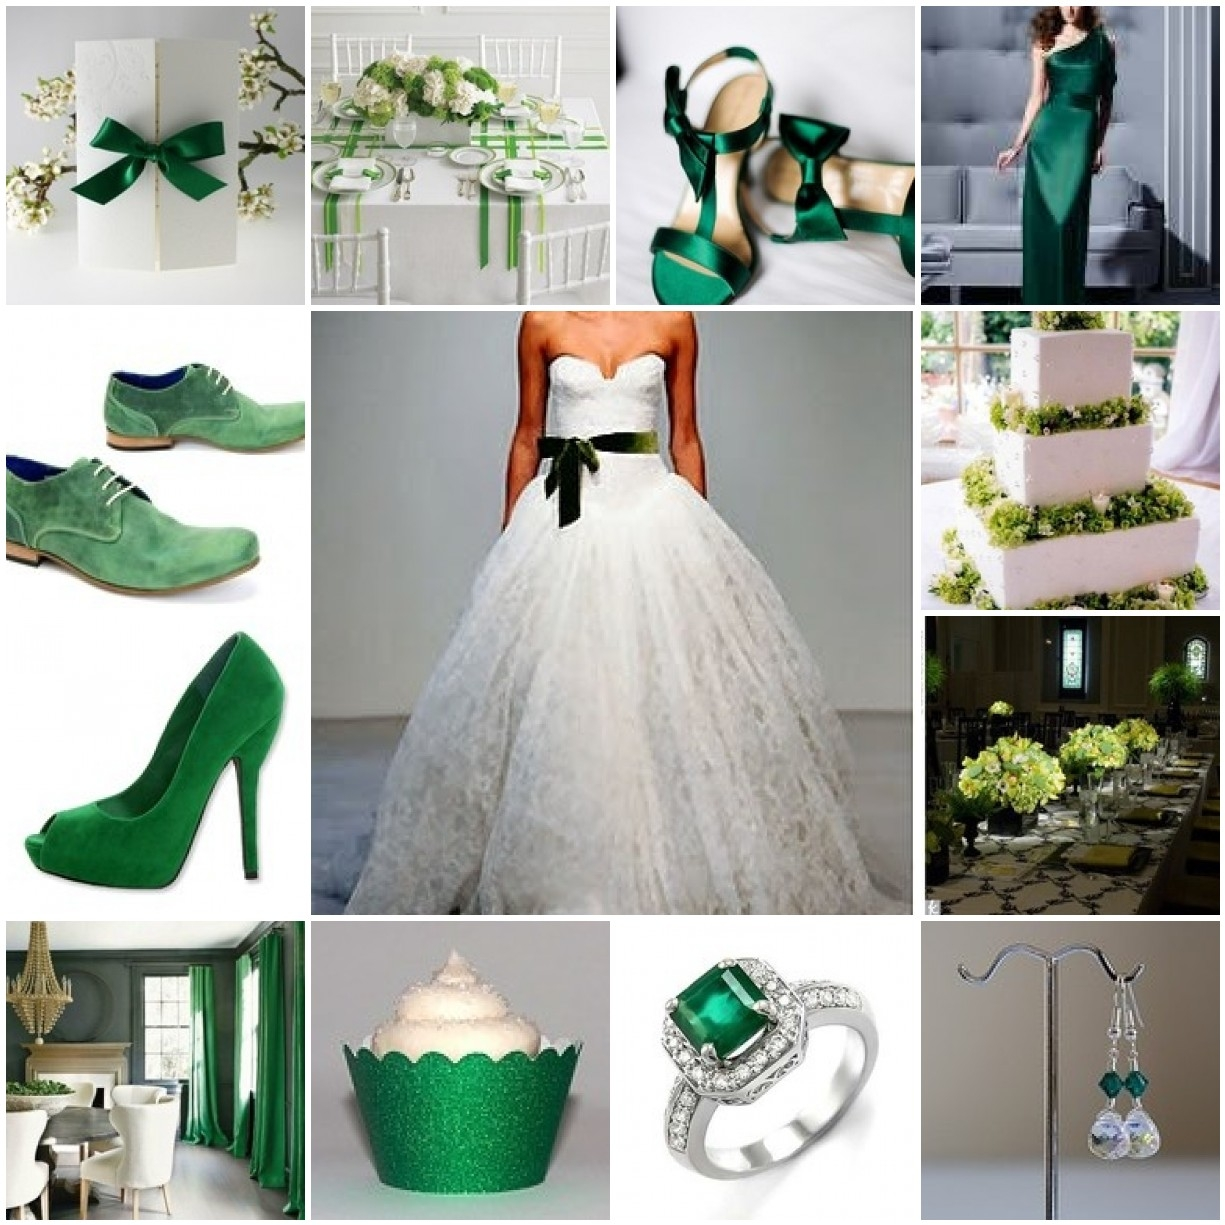 Wedding Ideas And Inspirations: 2013 Pantone Color Of The Year: Emerald Green